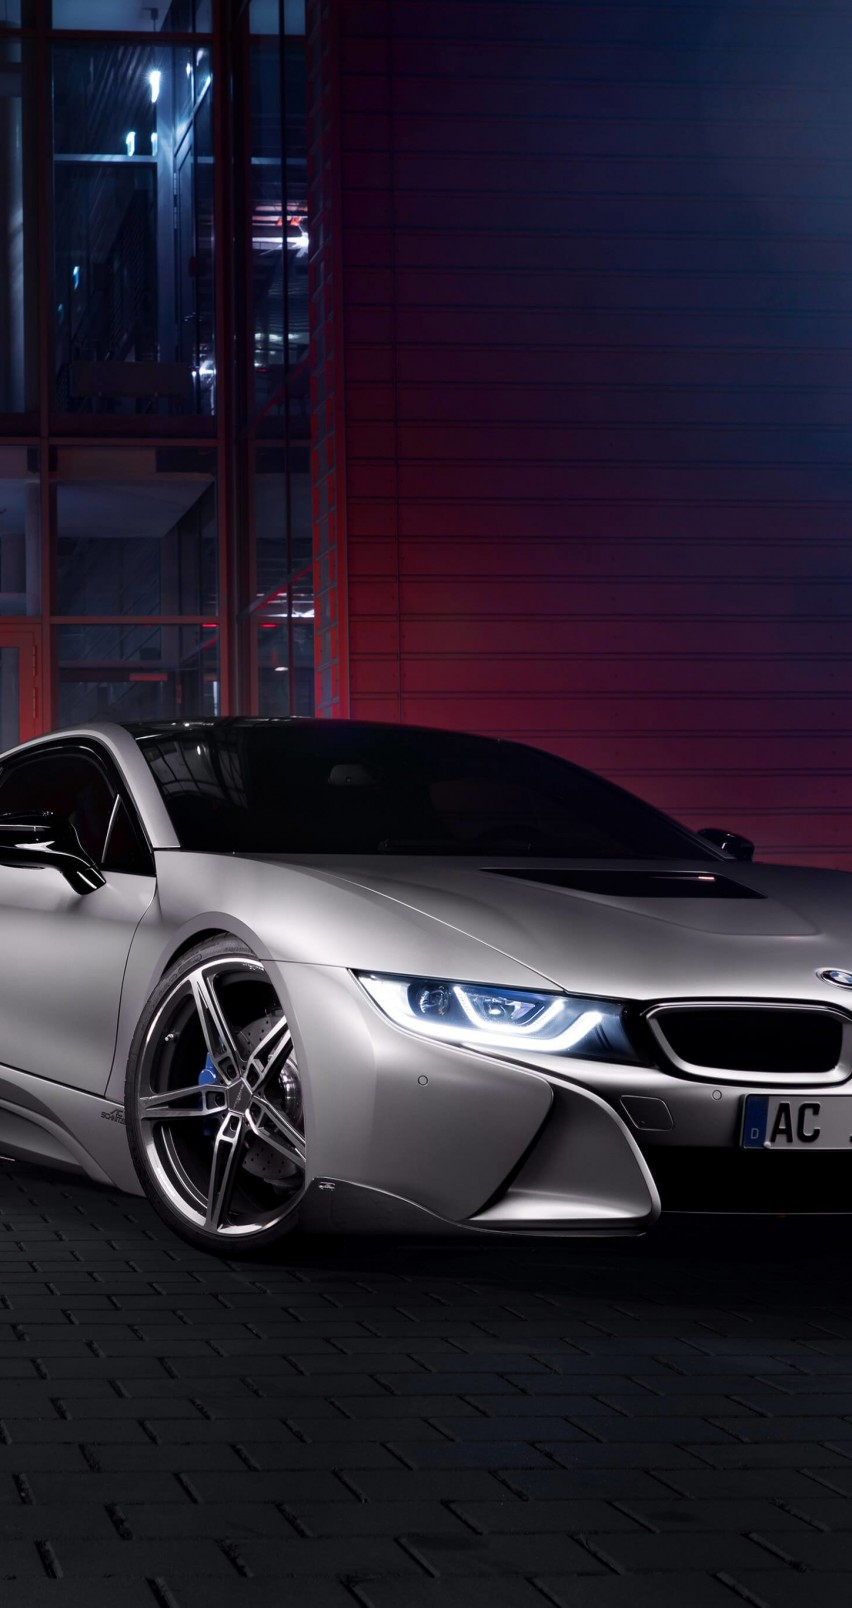 BMW i8 designed by AC Schnitzer Wallpaper for Apple iPhone 6 / 6s